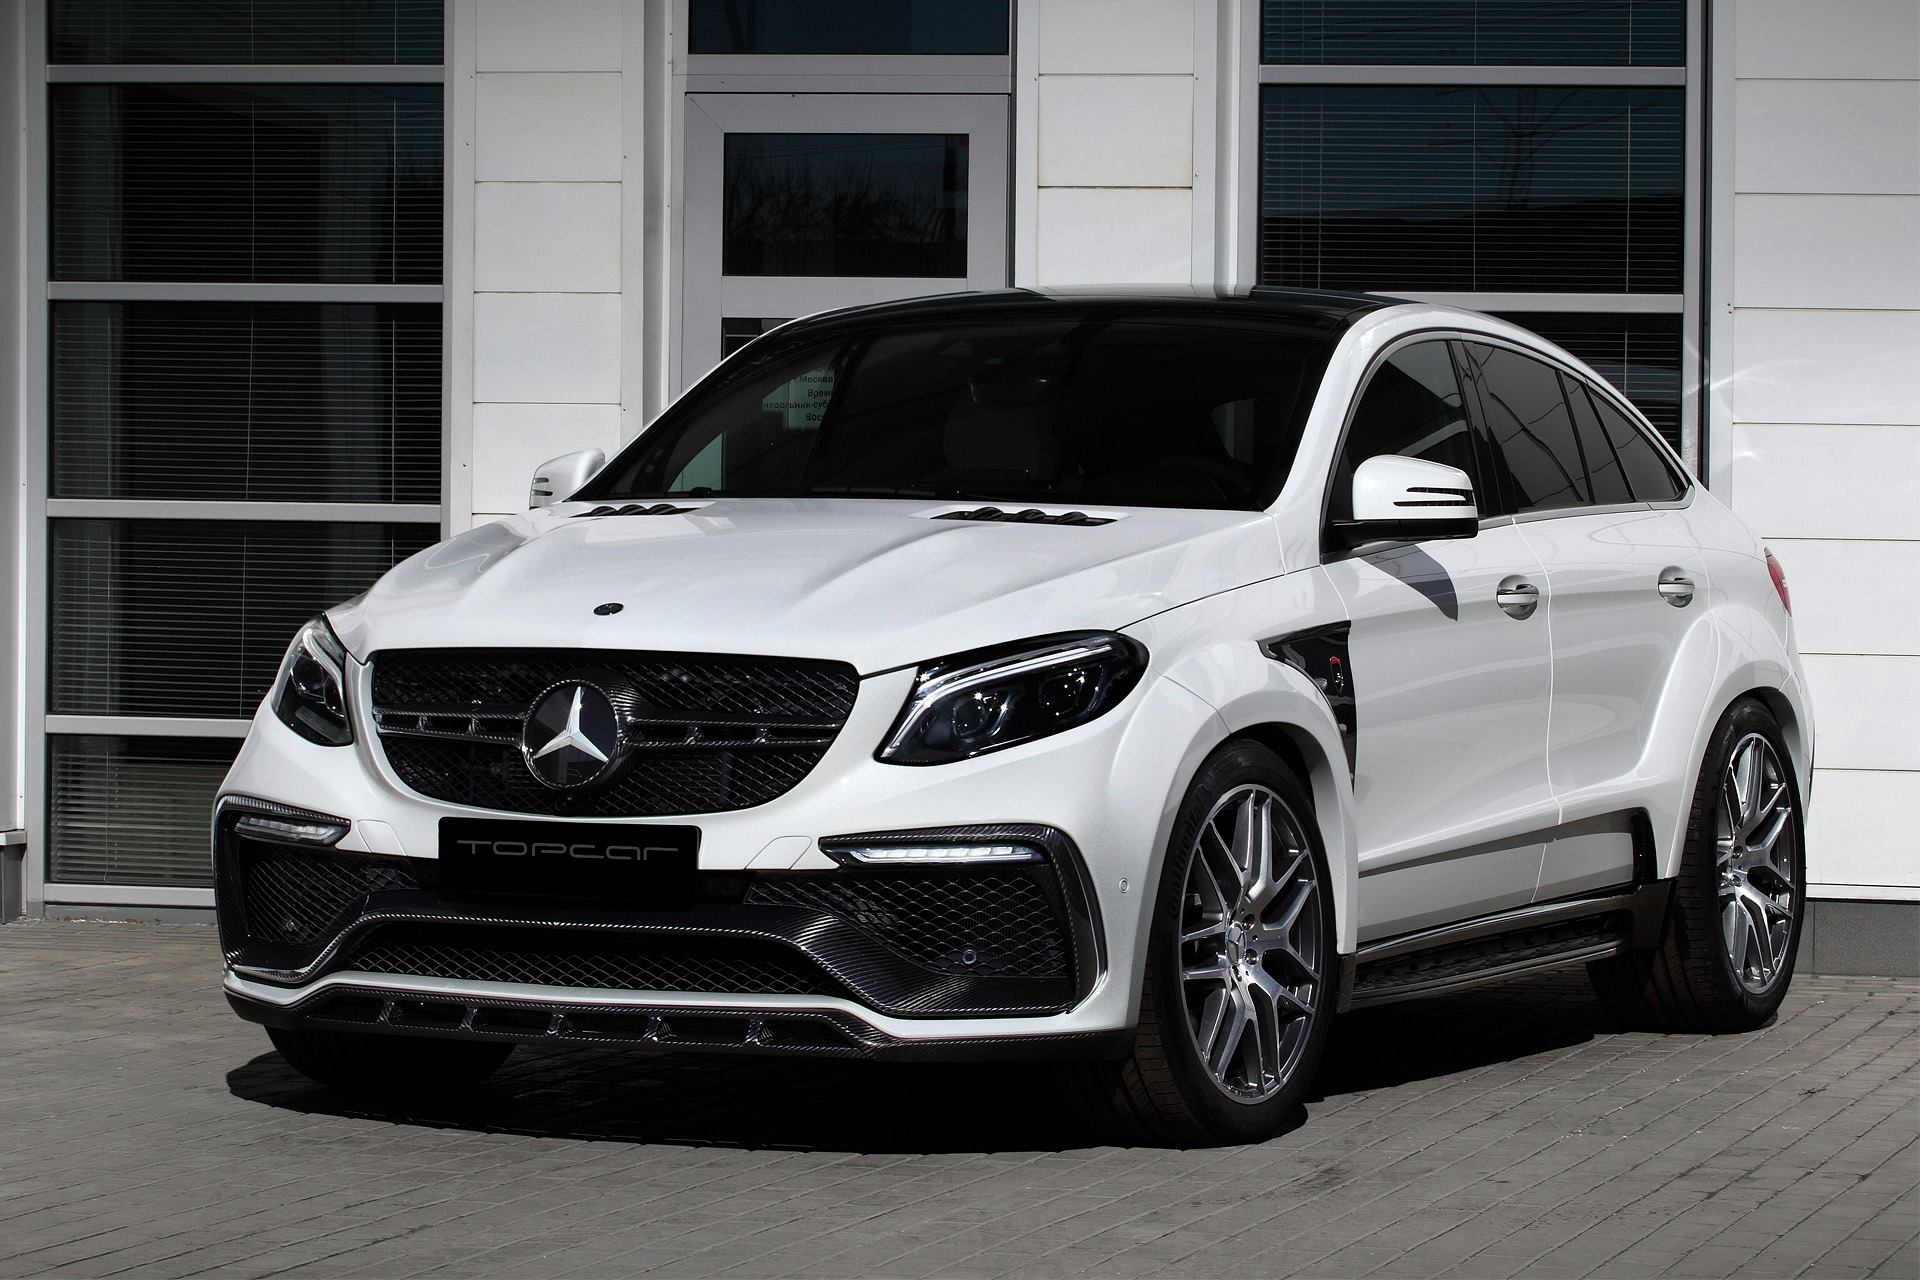 White Mercedes Gle Coupe 63s With Topcar Inferno Kit Has Carbon Details Autoevolution